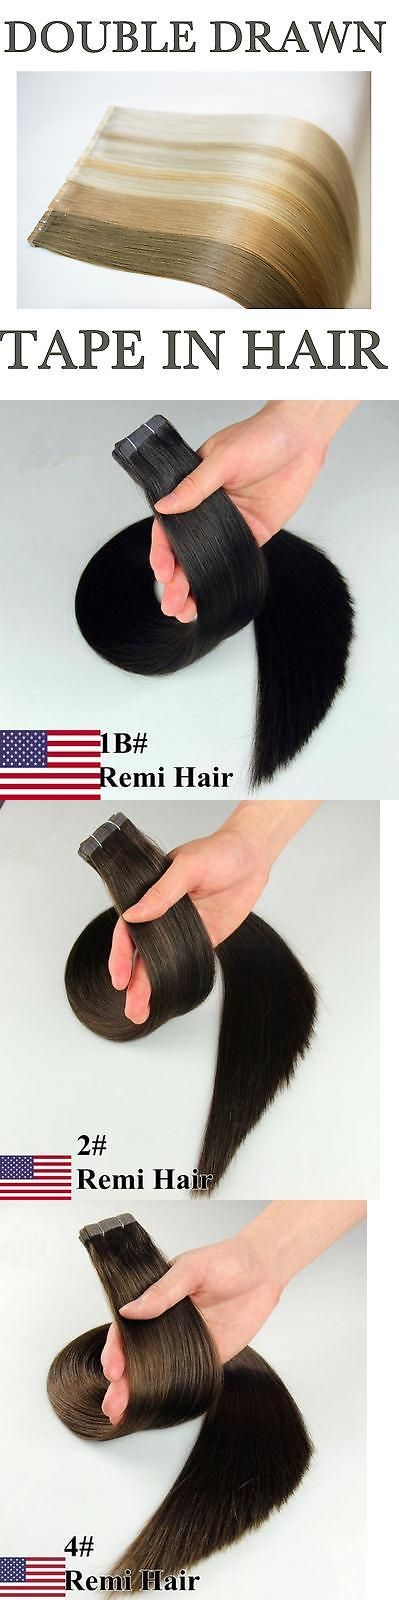 Hair Extensions: Best Quality Aaaaa 16 -24 Tape In 100% Premier Remy Human Hair Extensions Us -> BUY IT NOW ONLY: $37.76 on eBay!